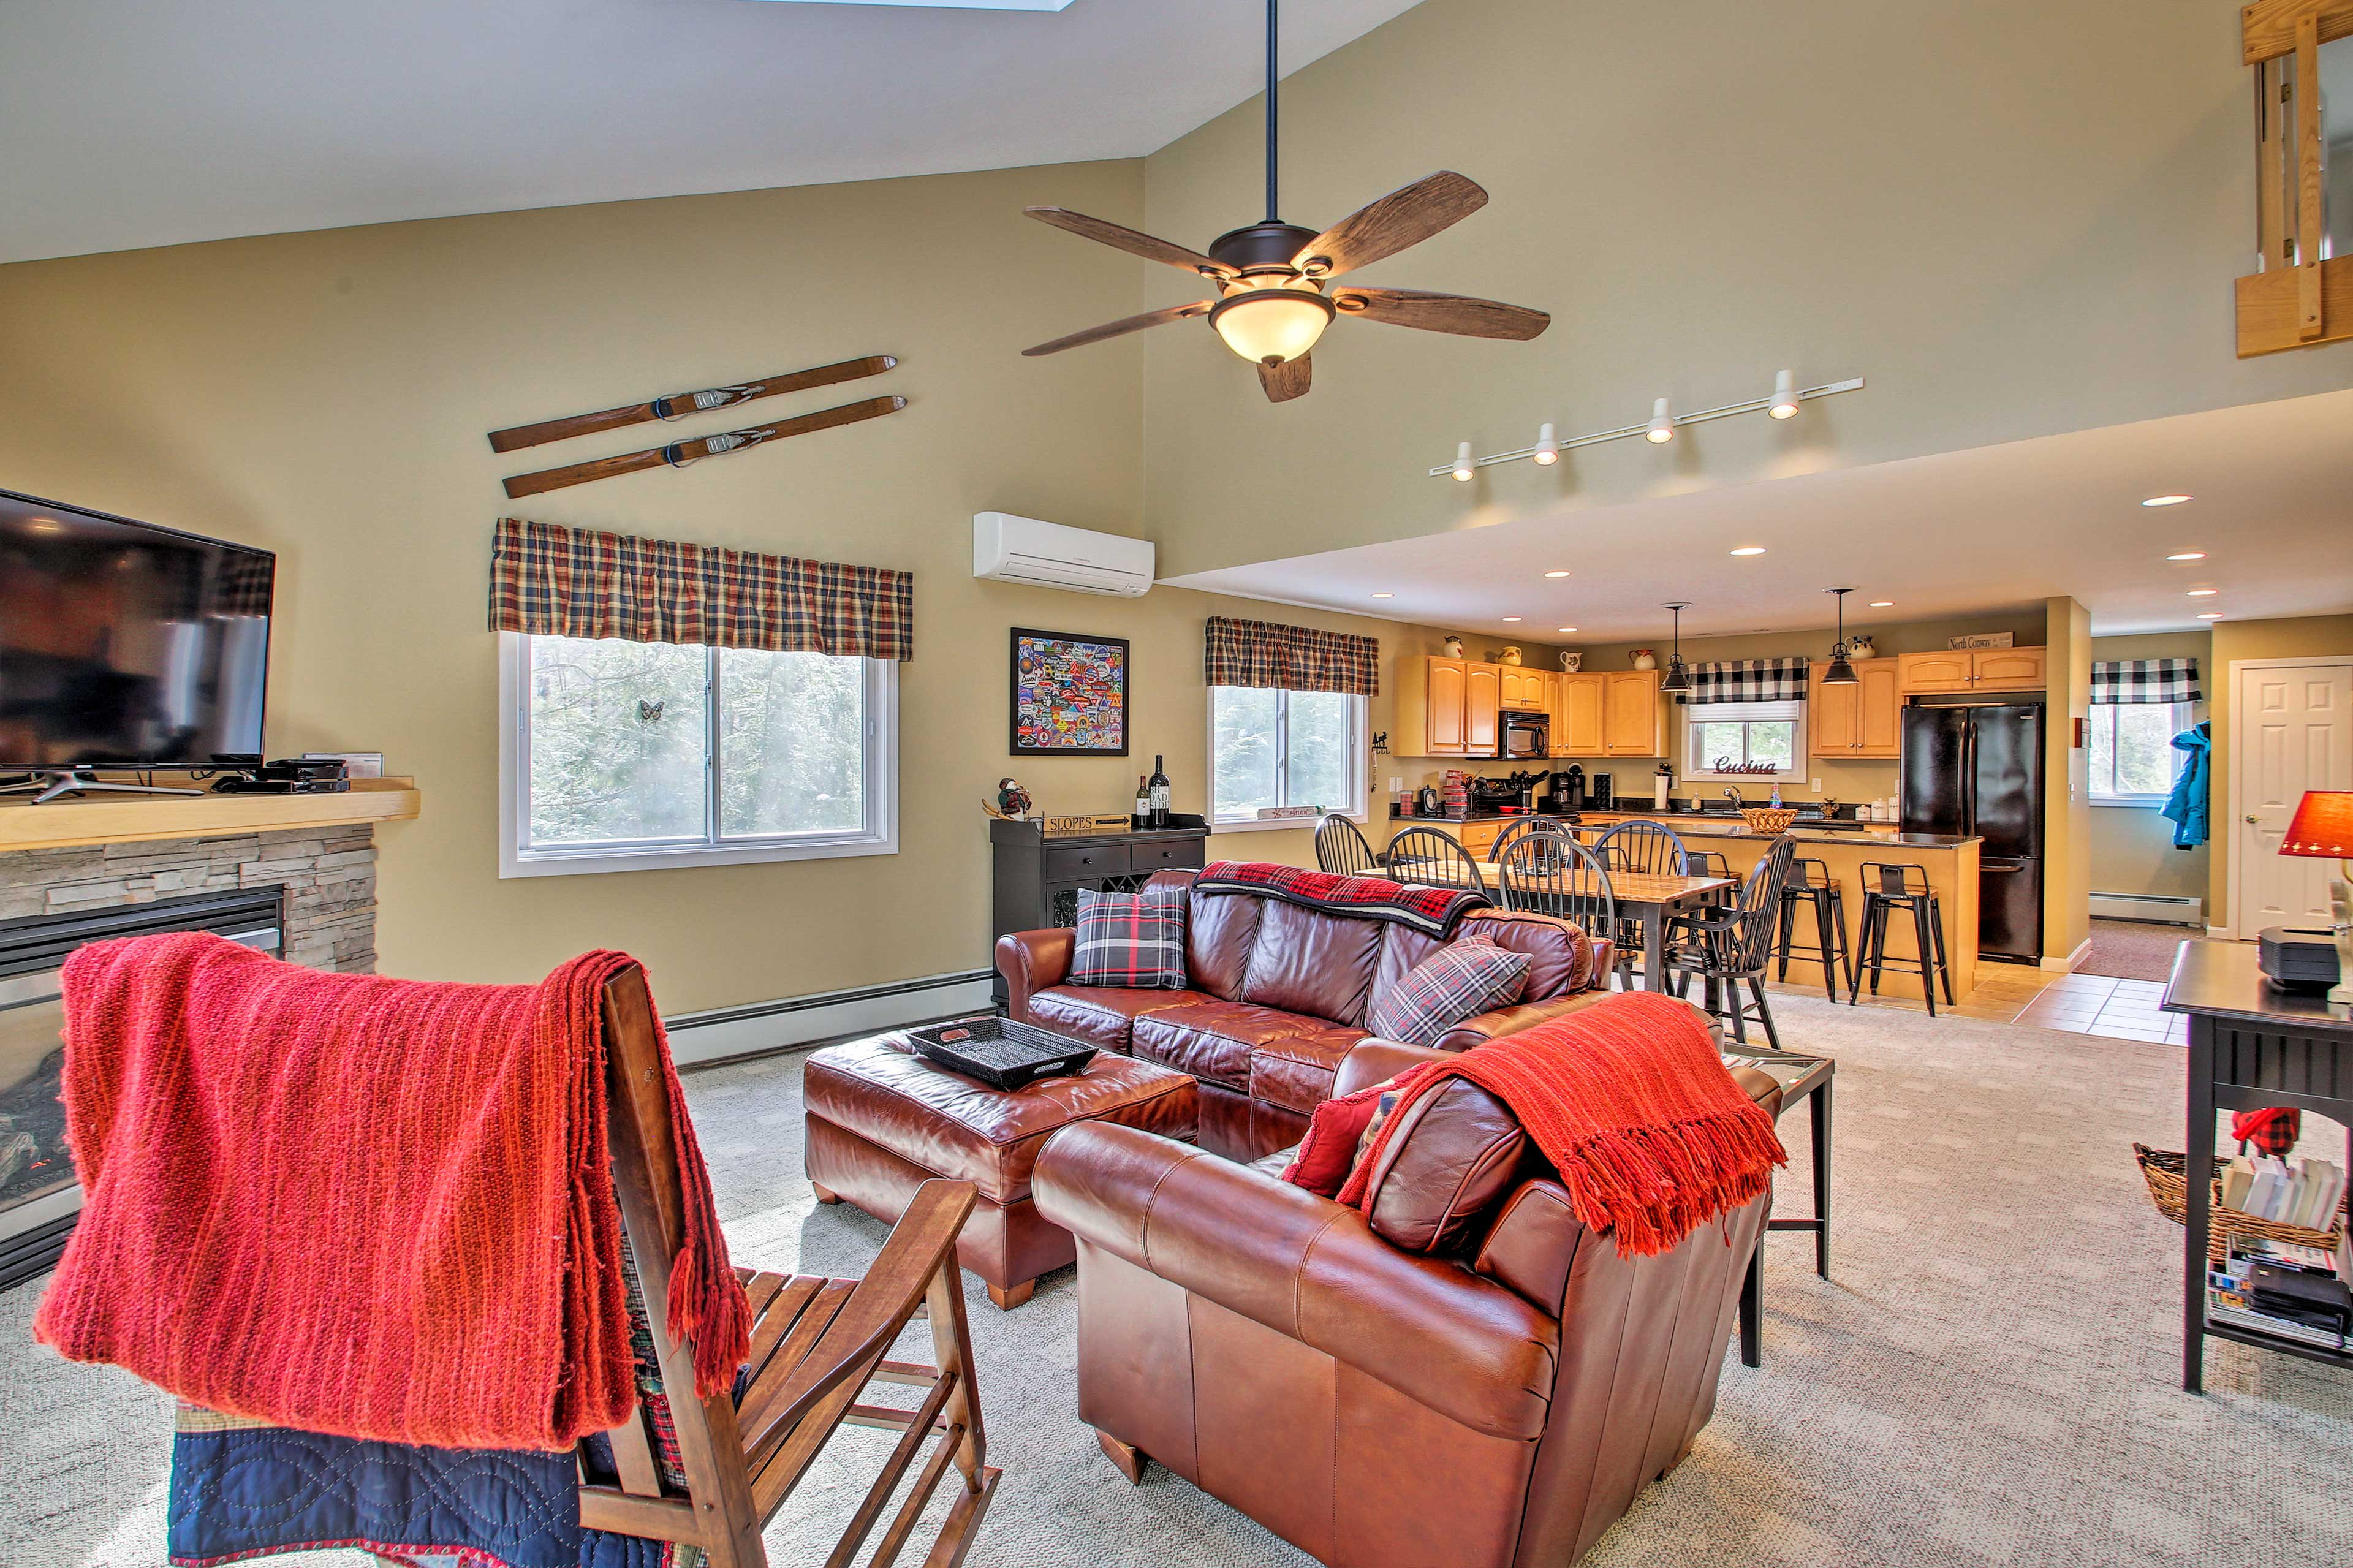 The open layout makes it easy for friends and family to socialize.